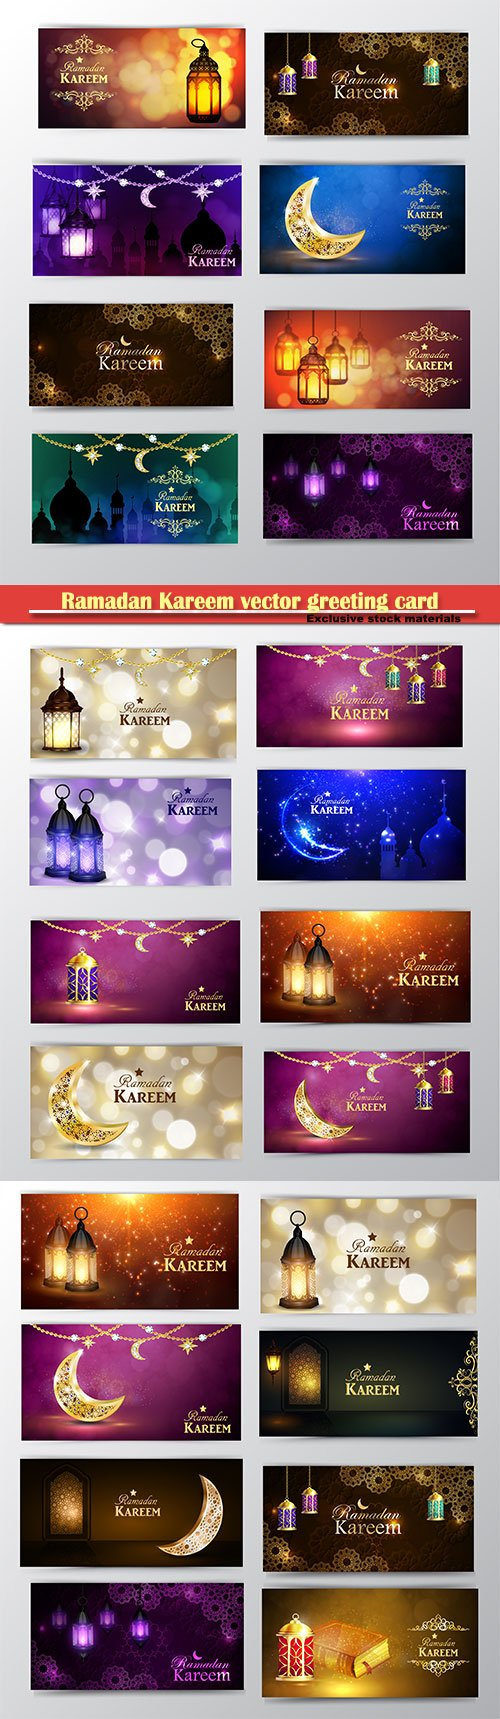 Ramadan Kareem vector greeting background, banner set